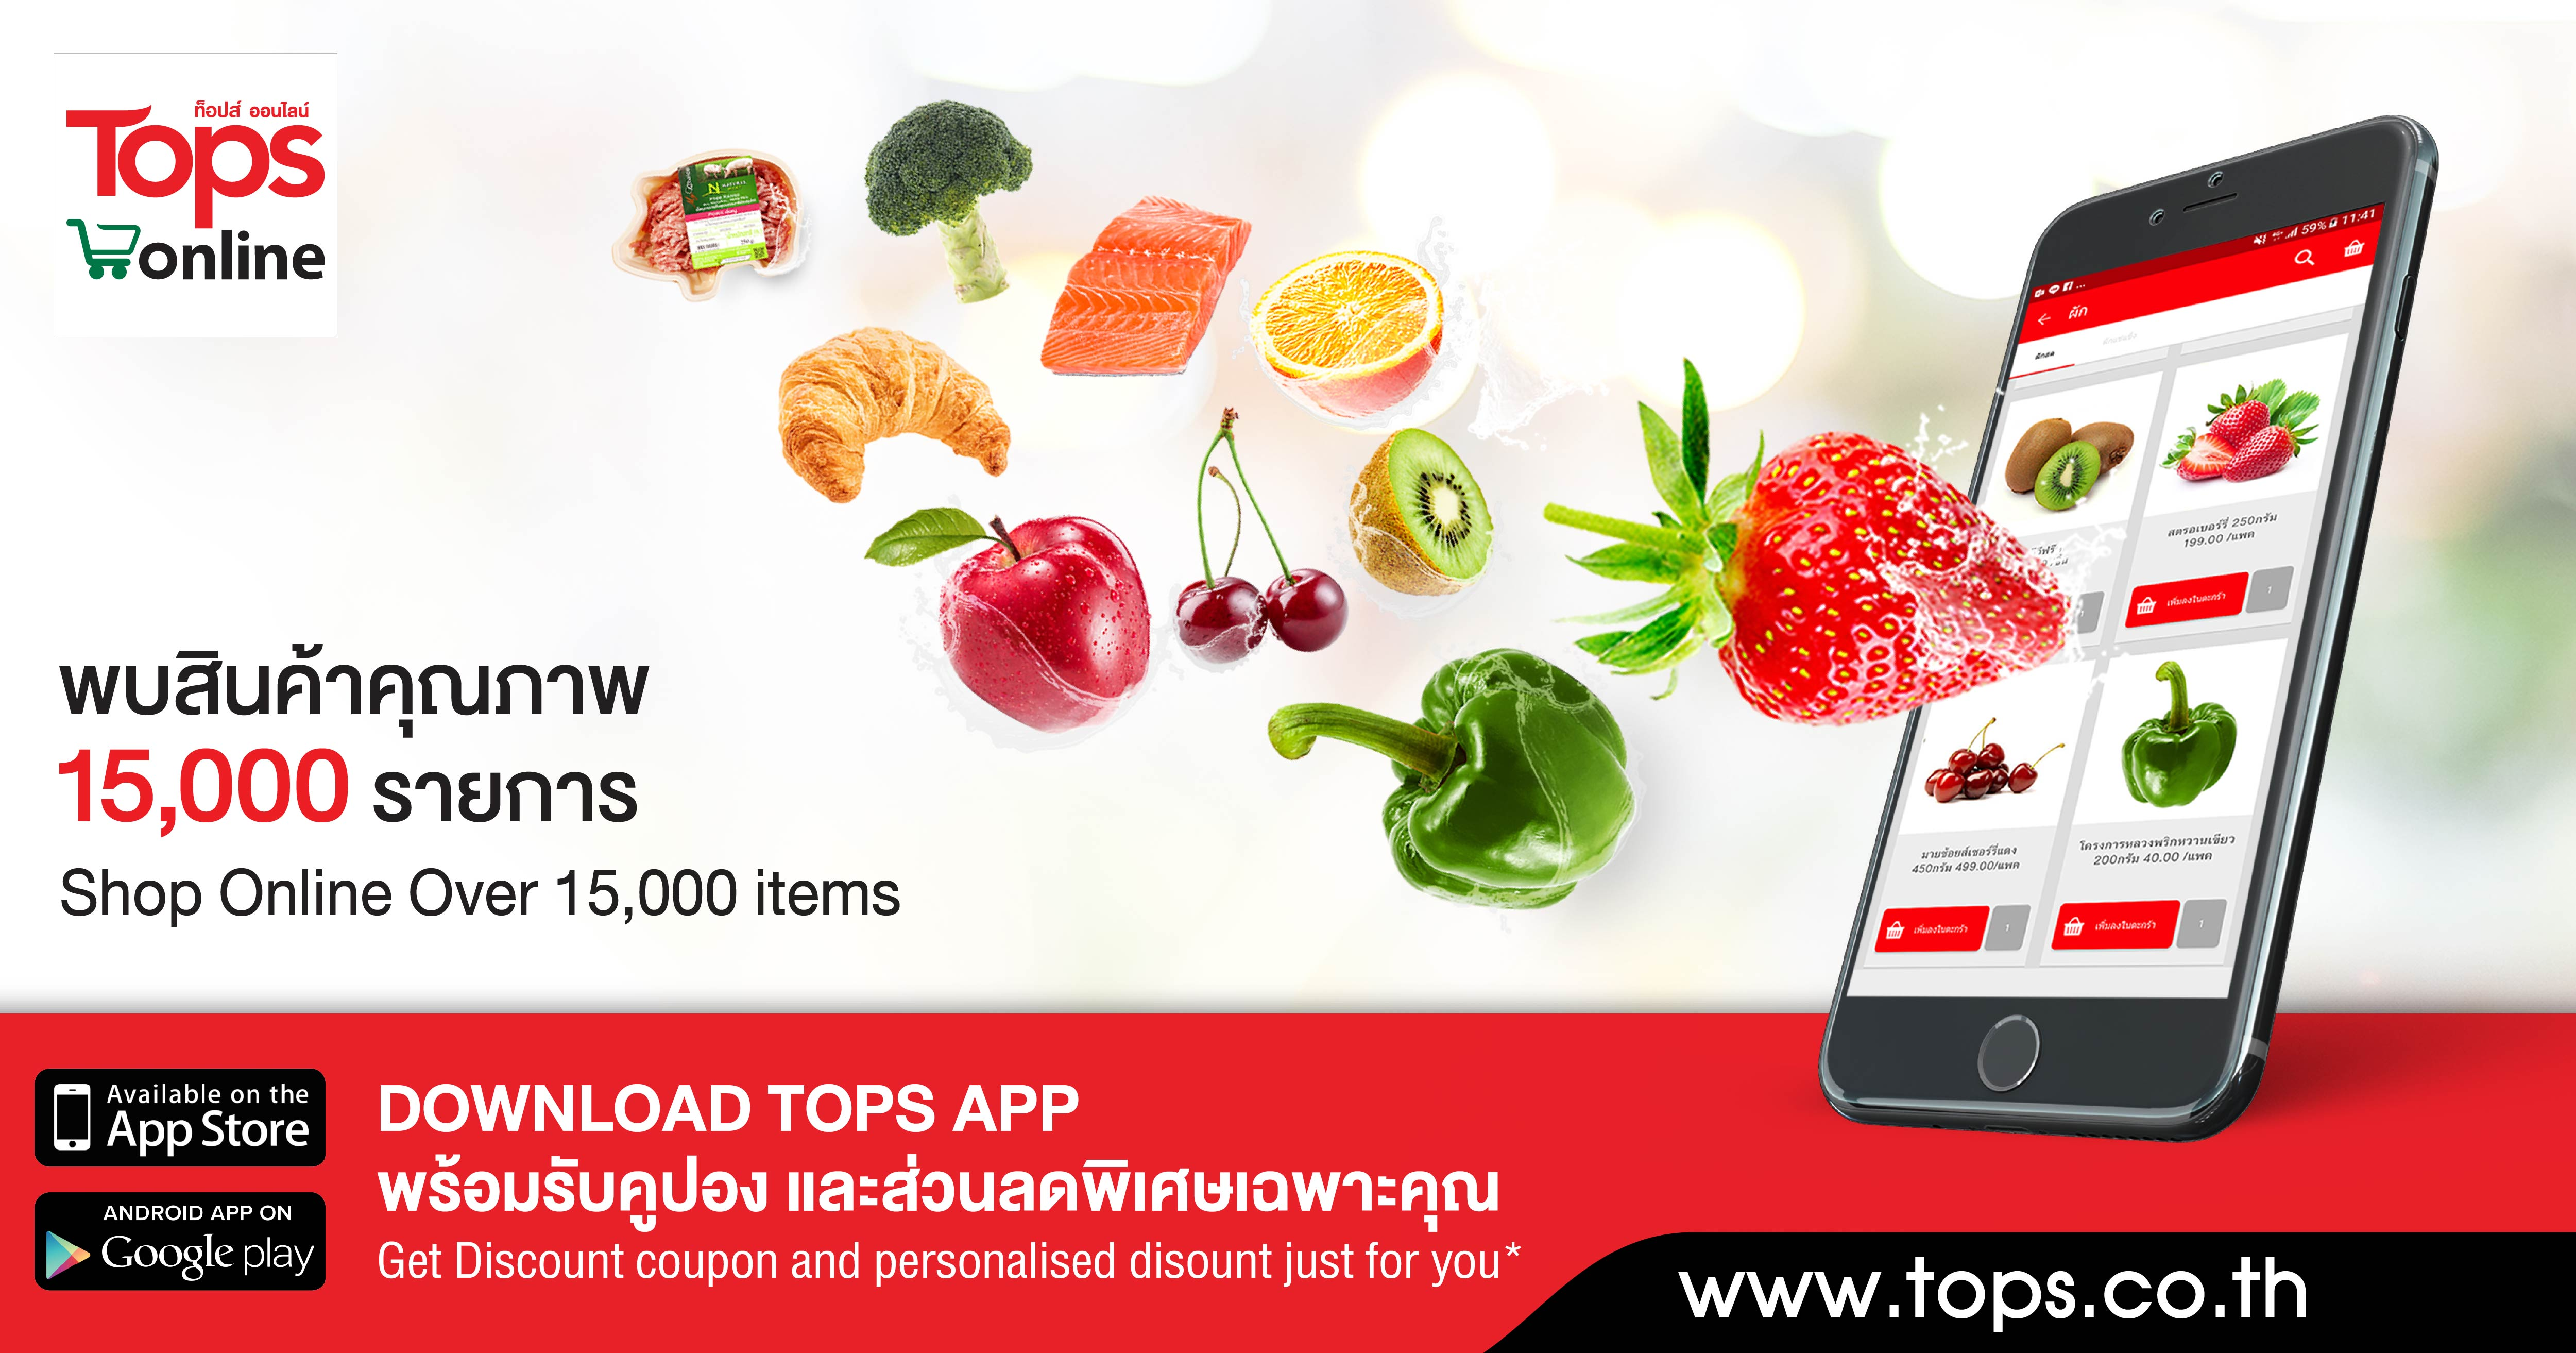 Tops Online Online Shopping For Your Groceries More At Tops Co Th